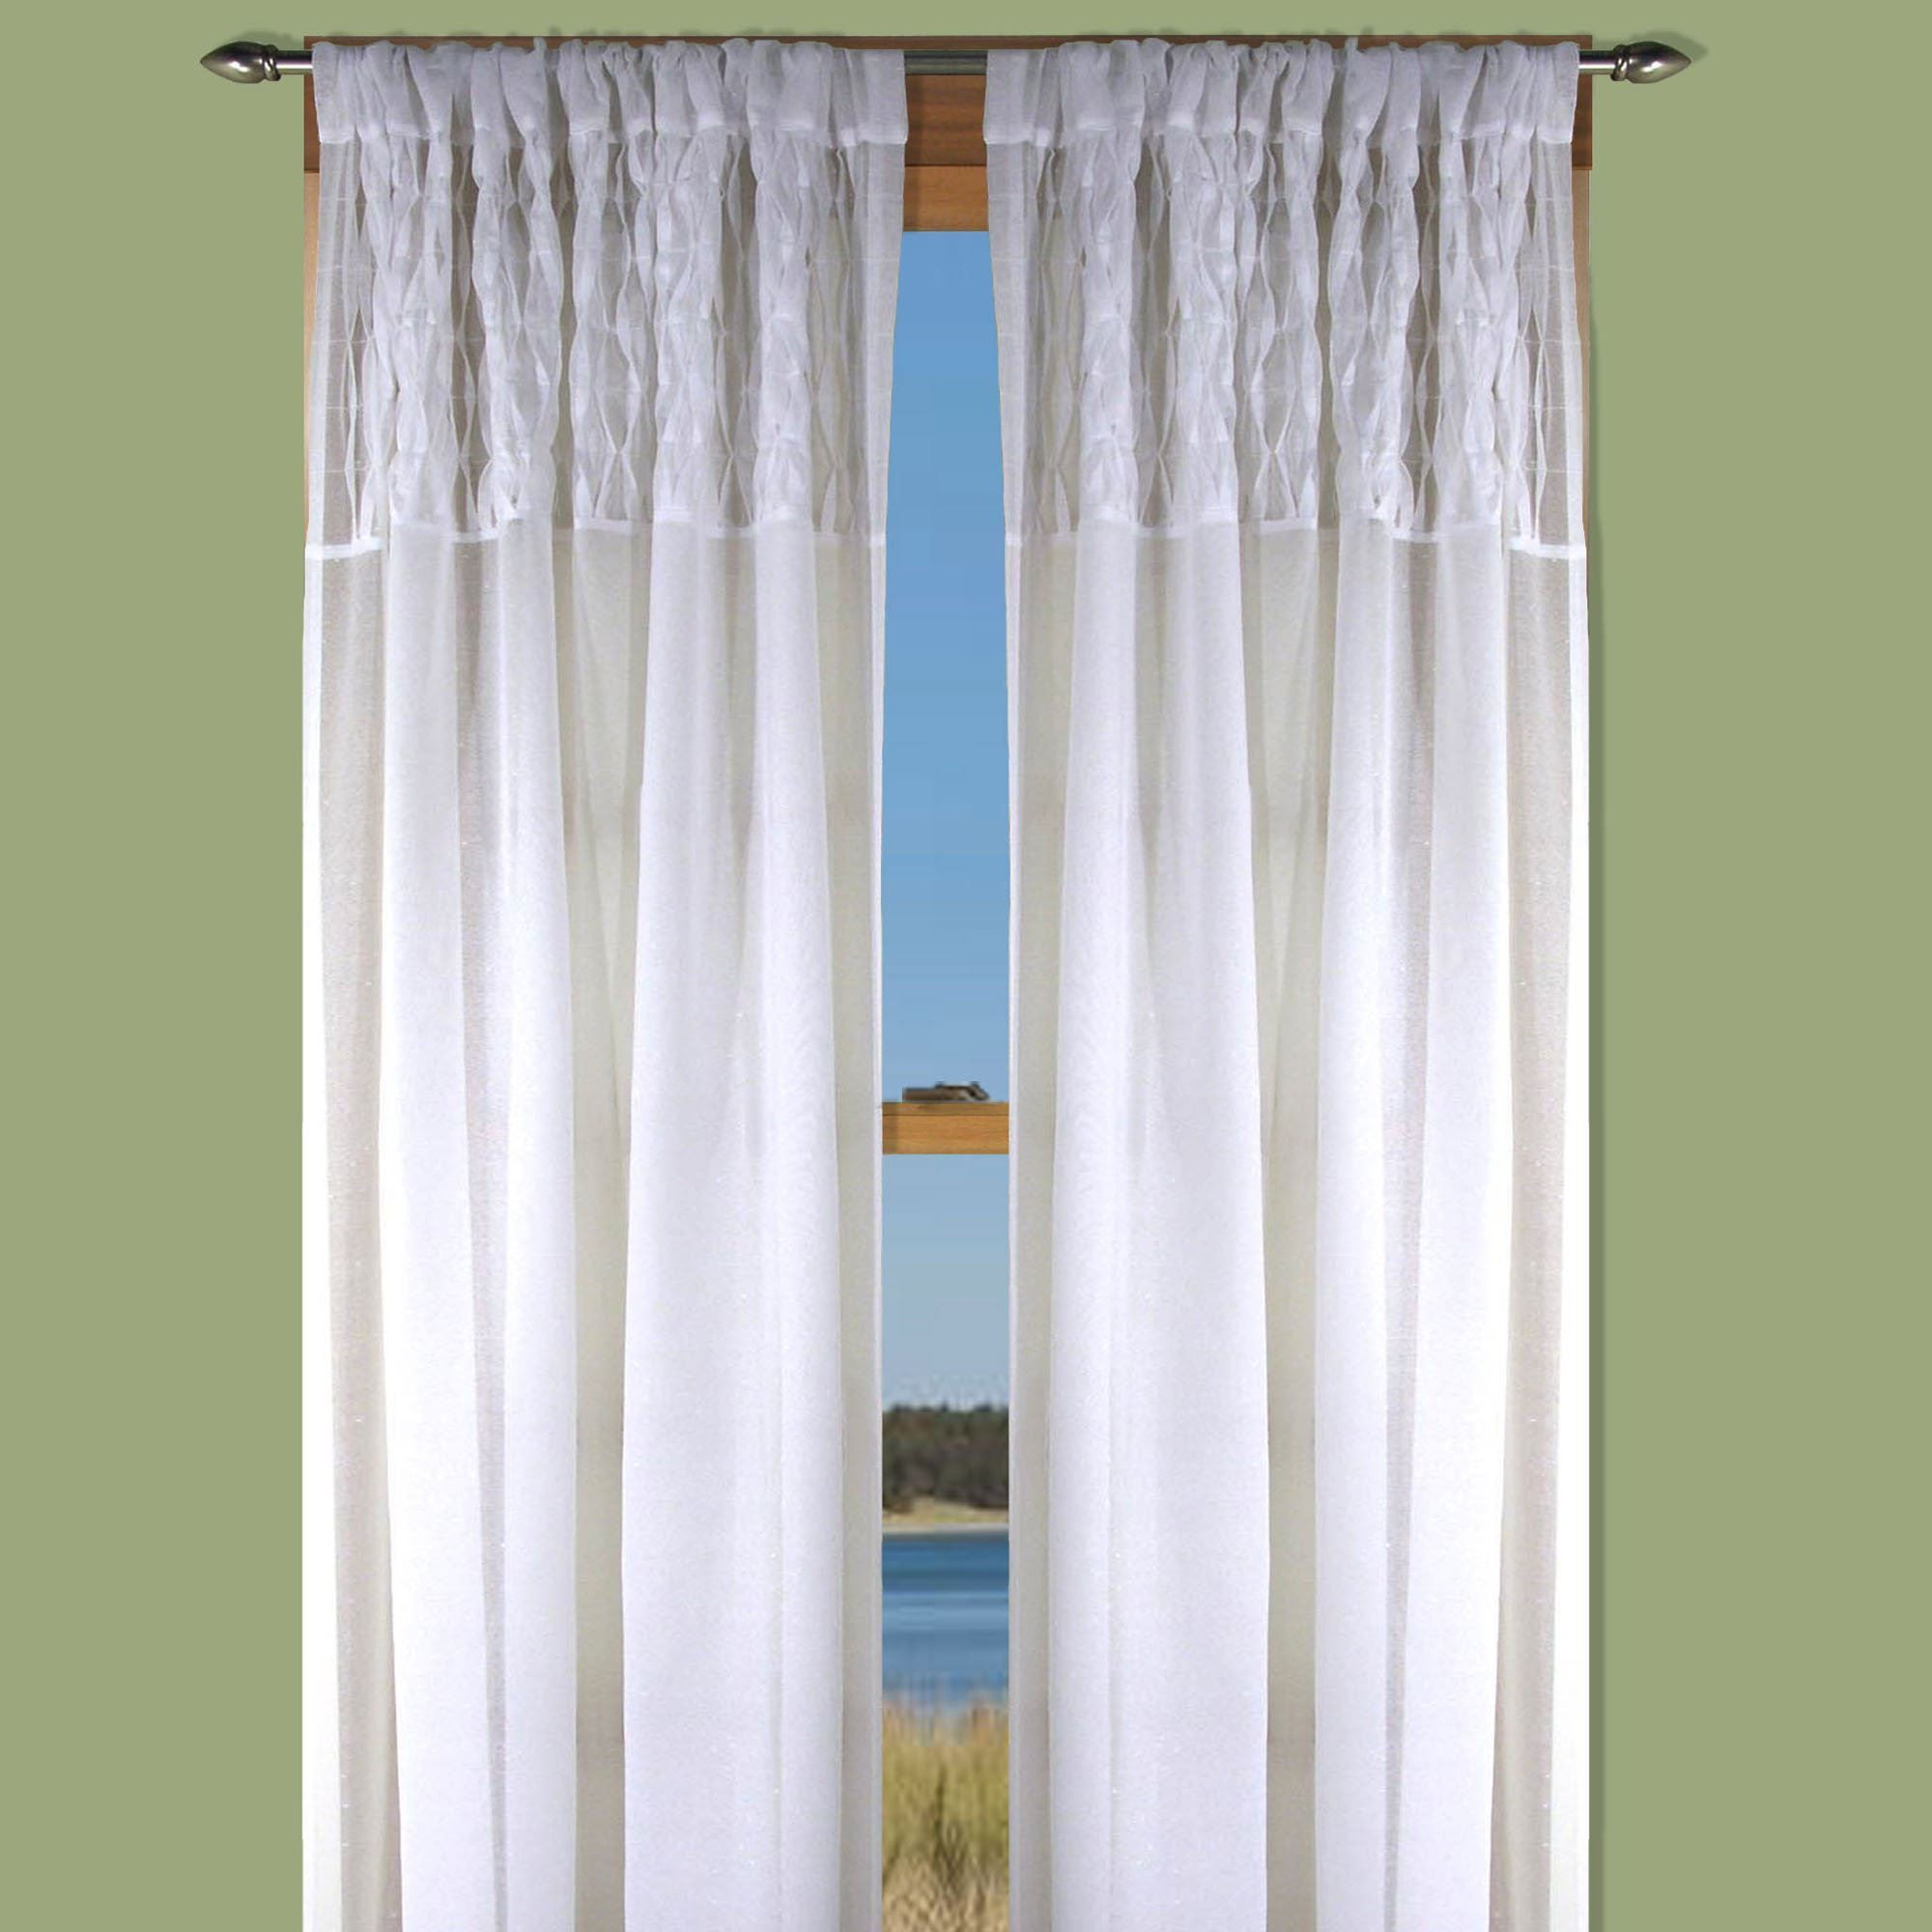 cfm curtain liberty product panels eclipse hayneedle panel sheer ellery master